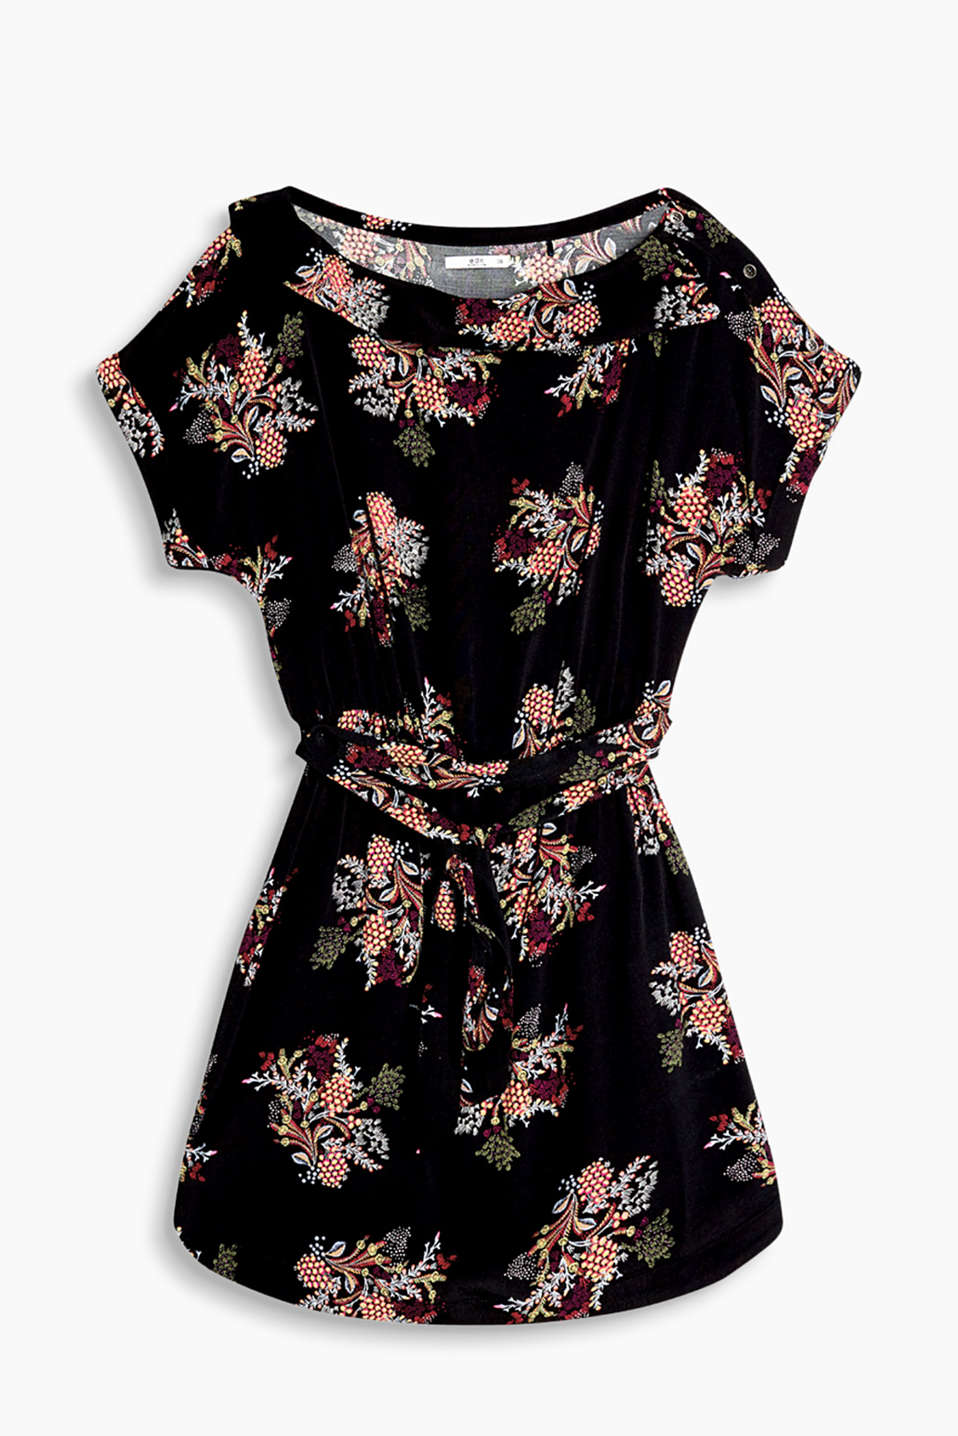 Floral print crêpe dress with a Carmen neckline and a tie-around belt